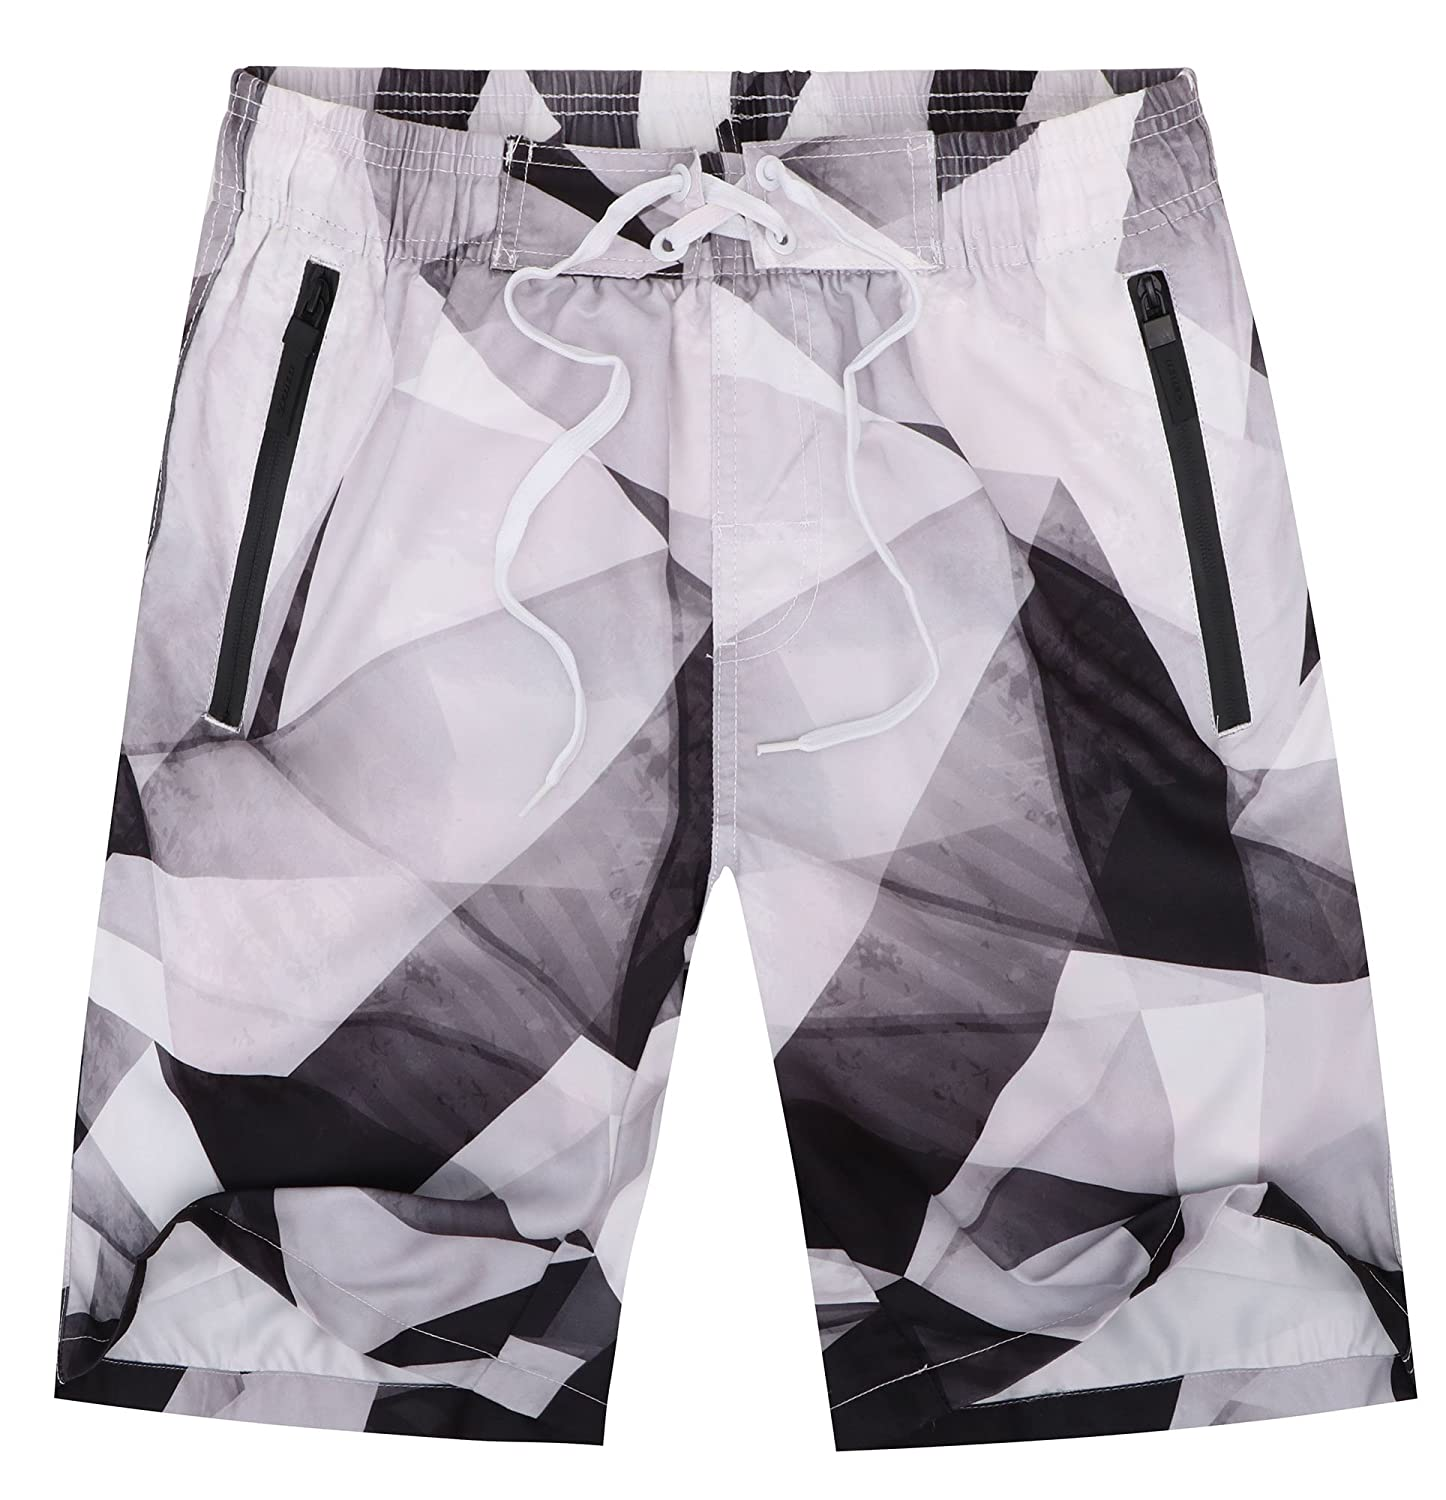 Halconia Men's Quick Dry Swim Trunks Beach Shorts Watershorts with Mesh Lining